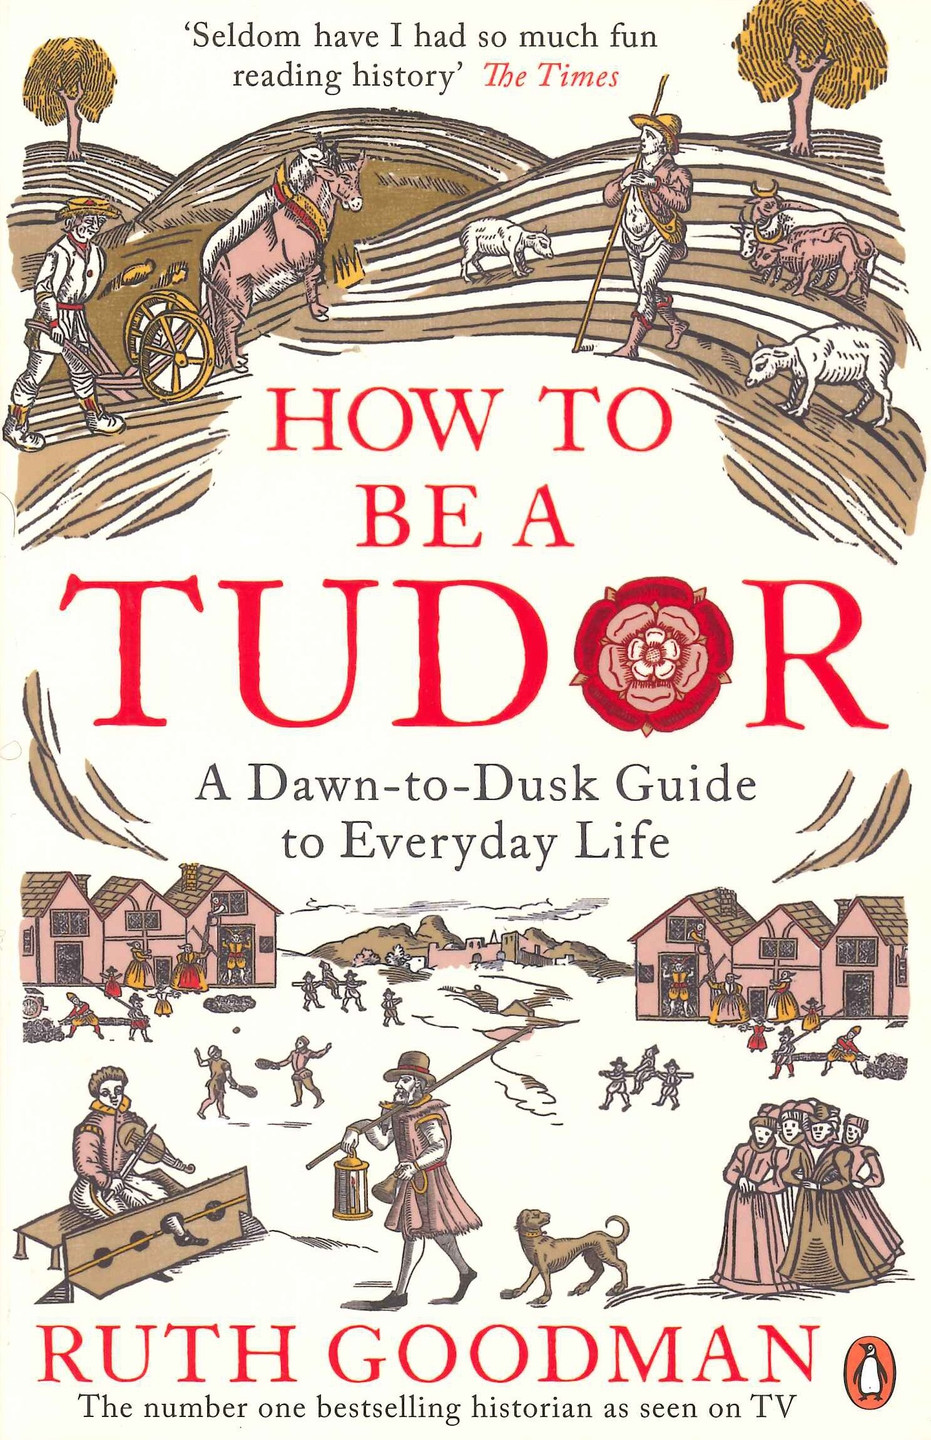 How to be a Tudor by Ruth Goodman, paperback book. Royal history